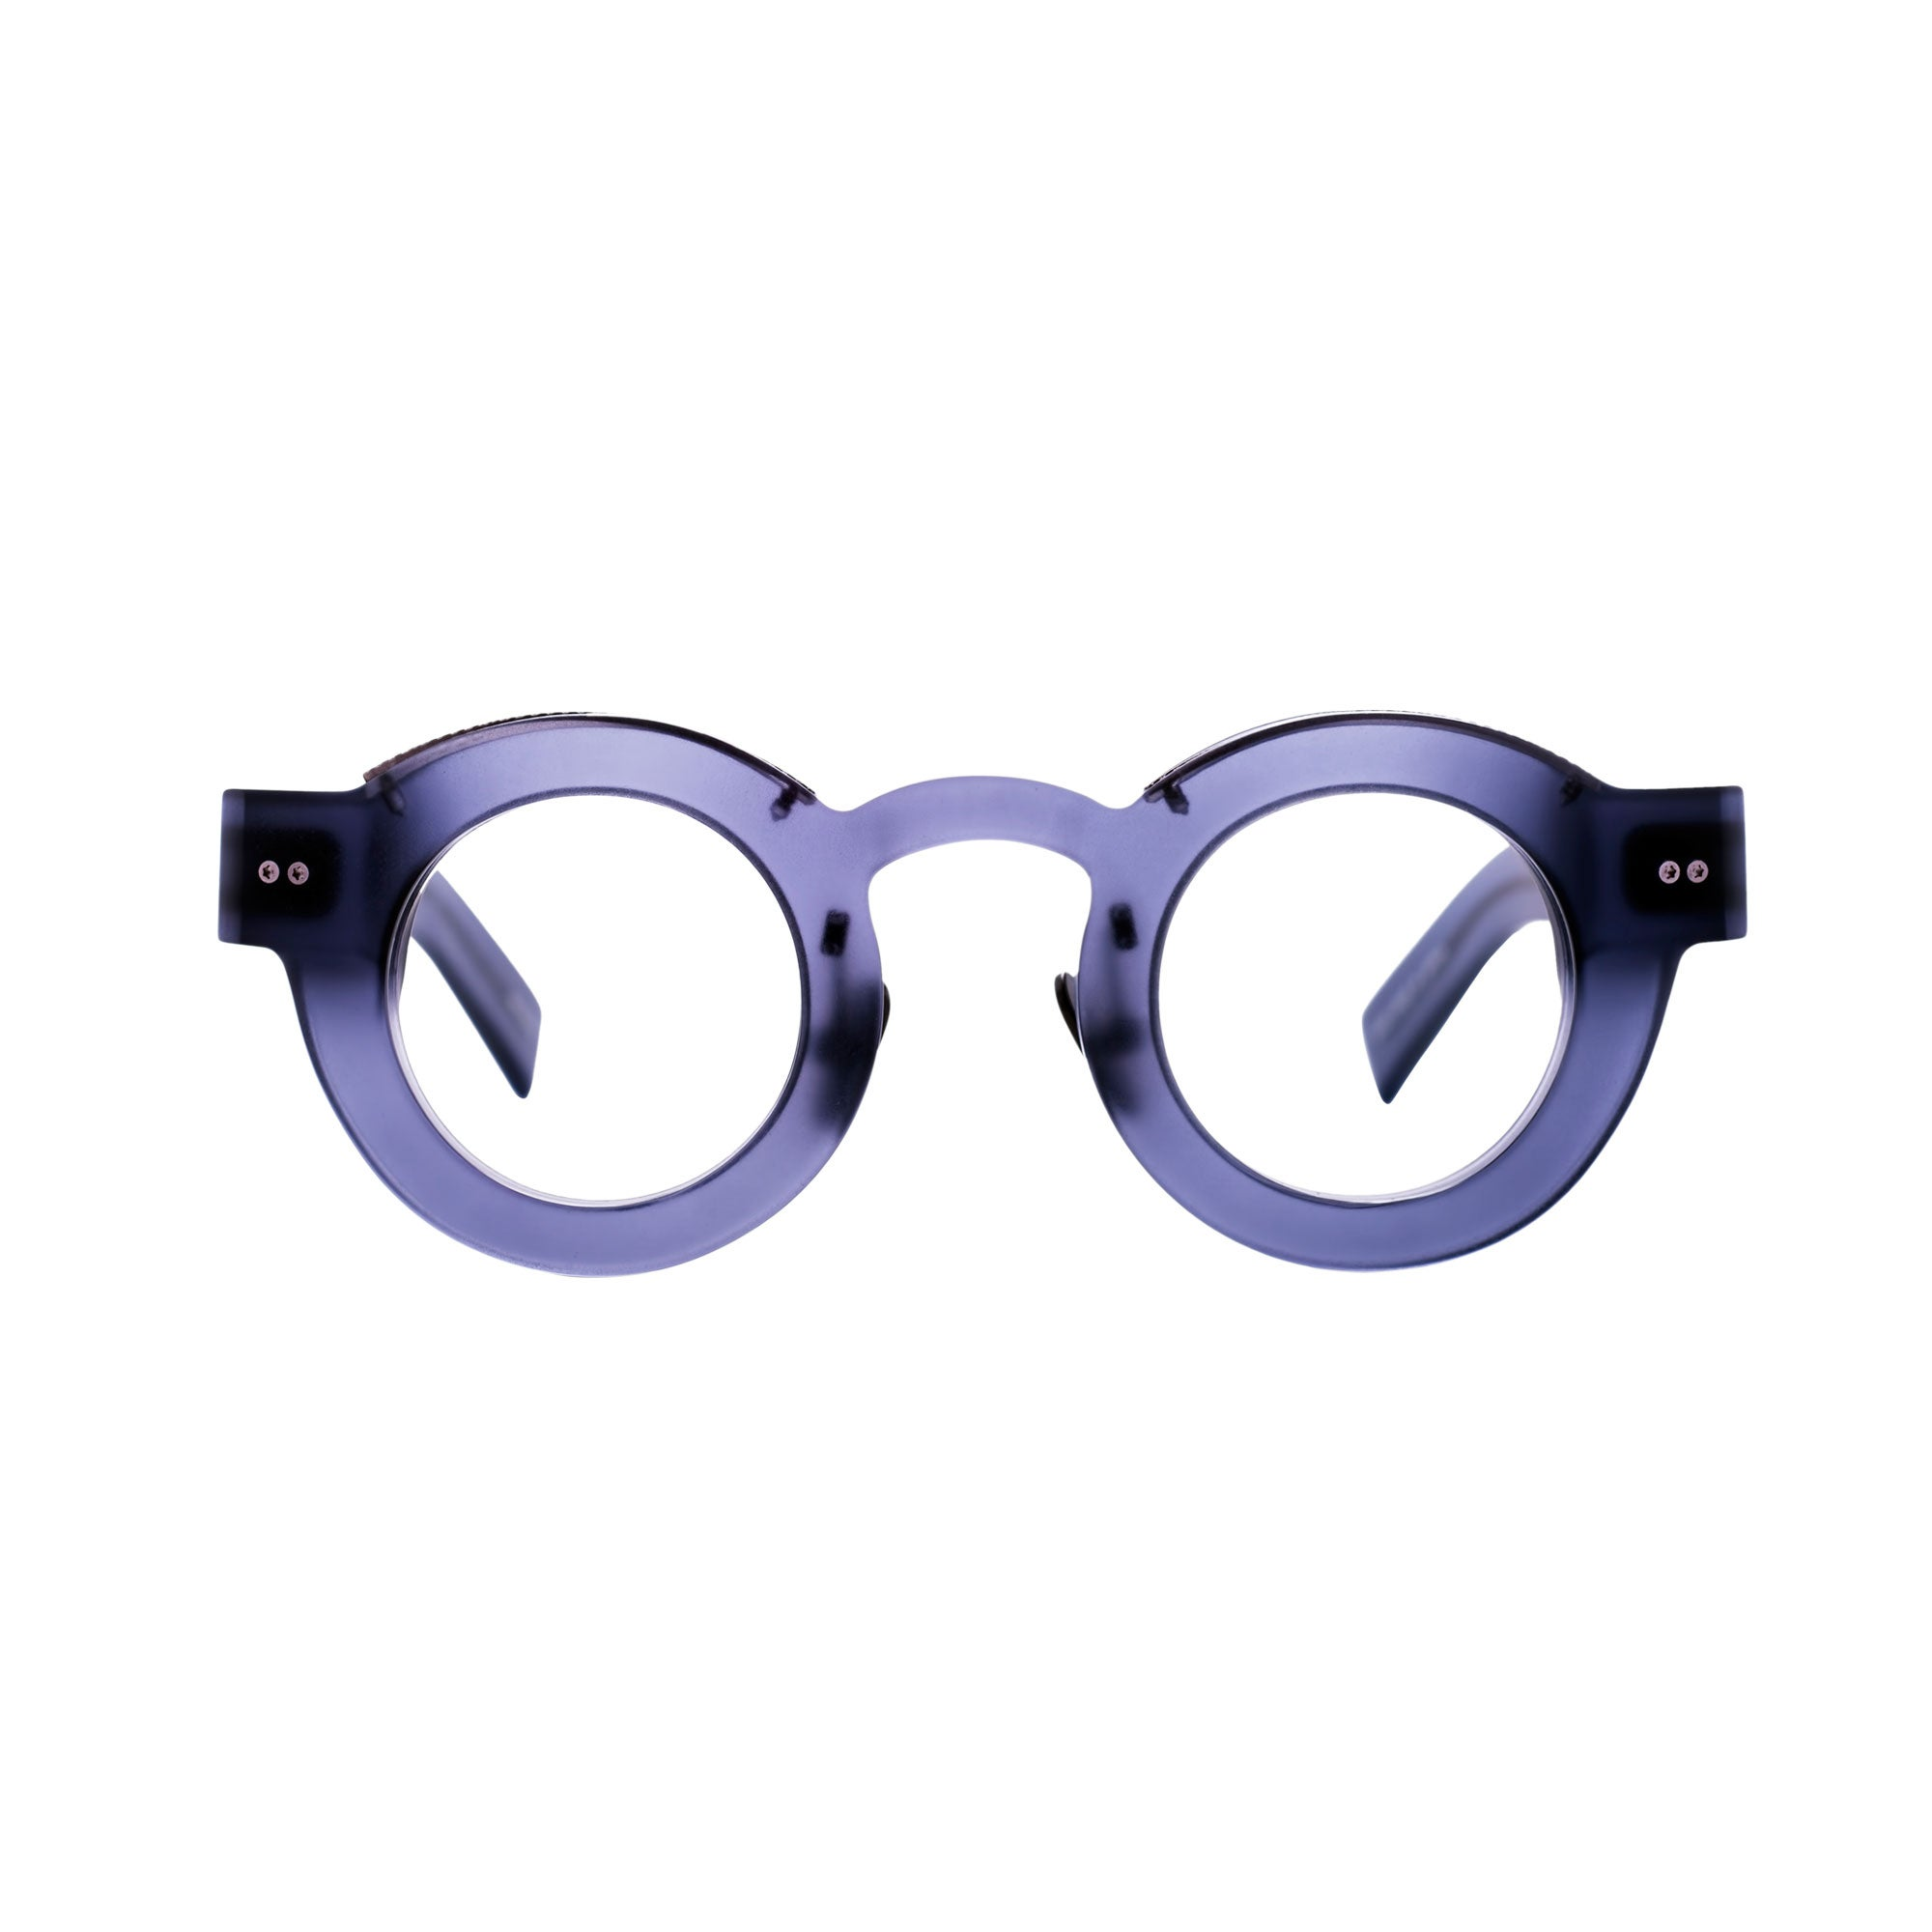 7630780369e What A Spectacle  Chic Eyewear Worth Taking a Second Look At